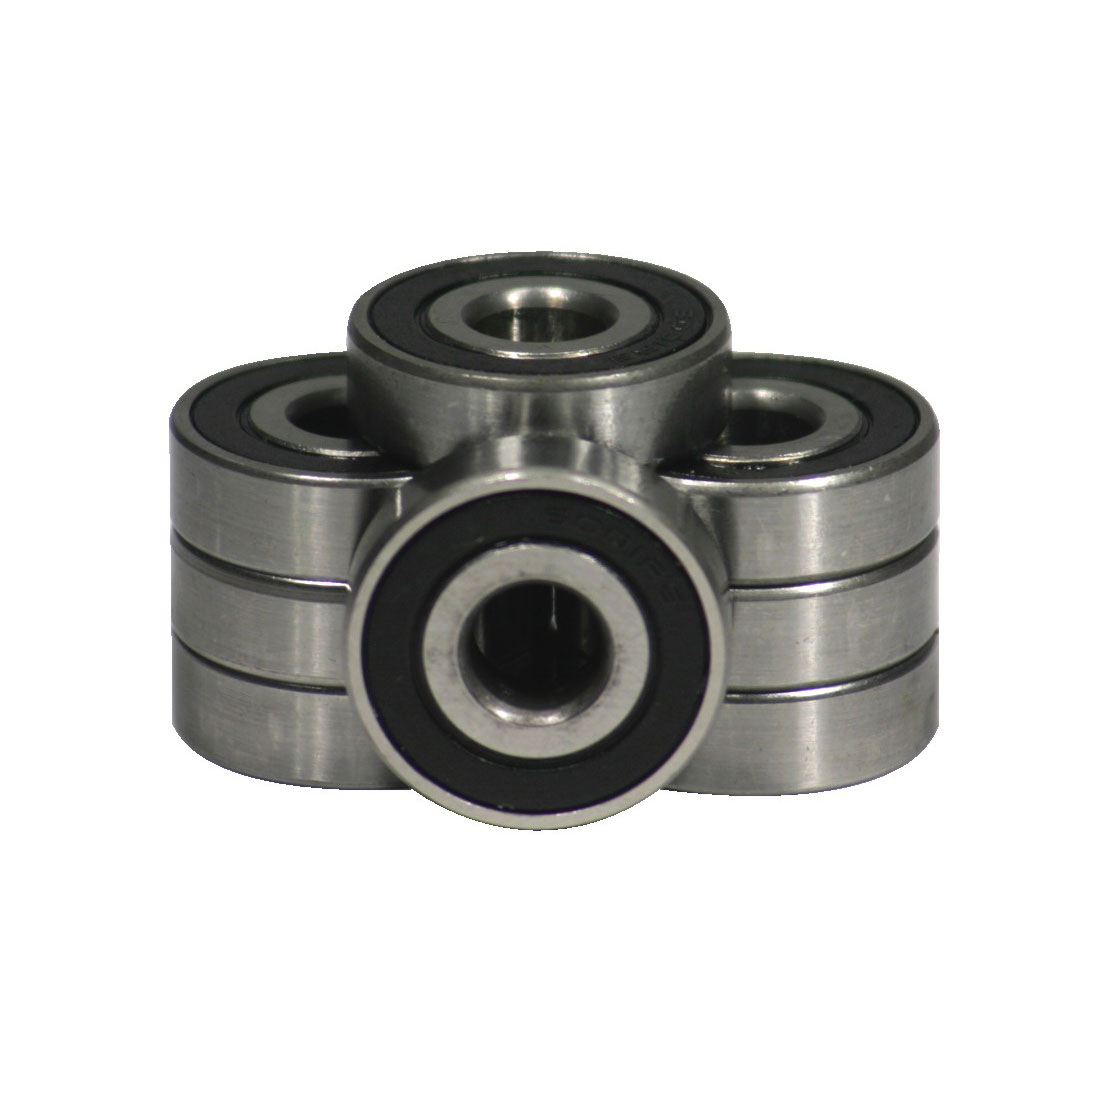 "1/2"" Tri-Spoke - Outside Bearing"